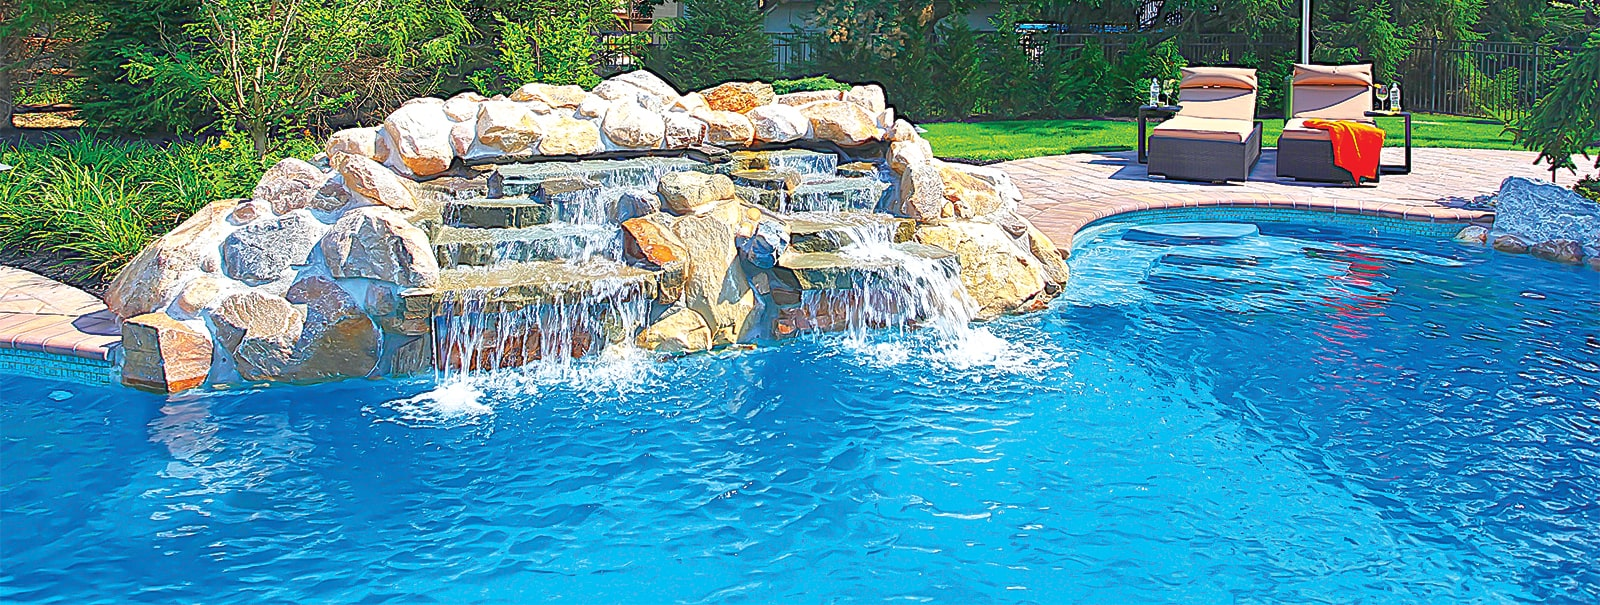 Southern Maryland Custom Swimming Pool Builders│Blue Haven Pools